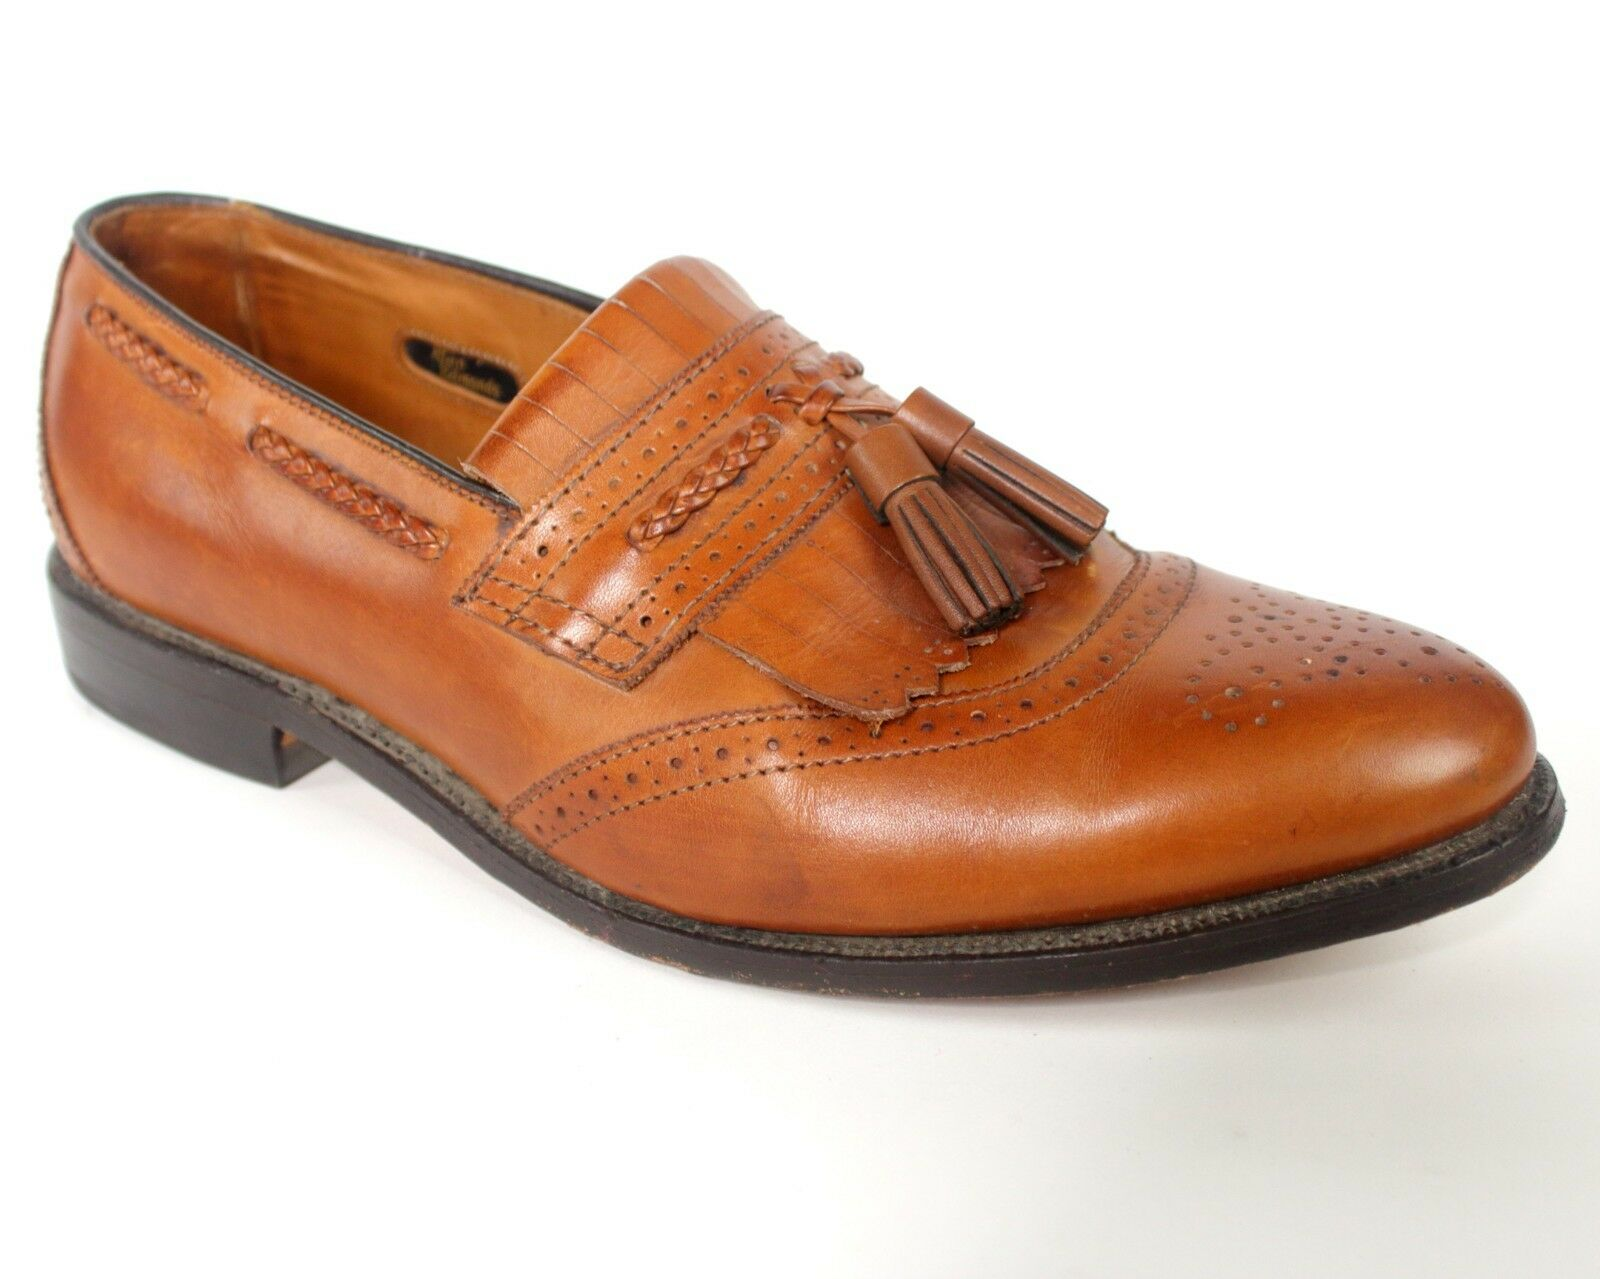 Mens Allen Edmonds Bradenton Brown Leather Brogues Kiltie Tassel Loafers Sz 8.5